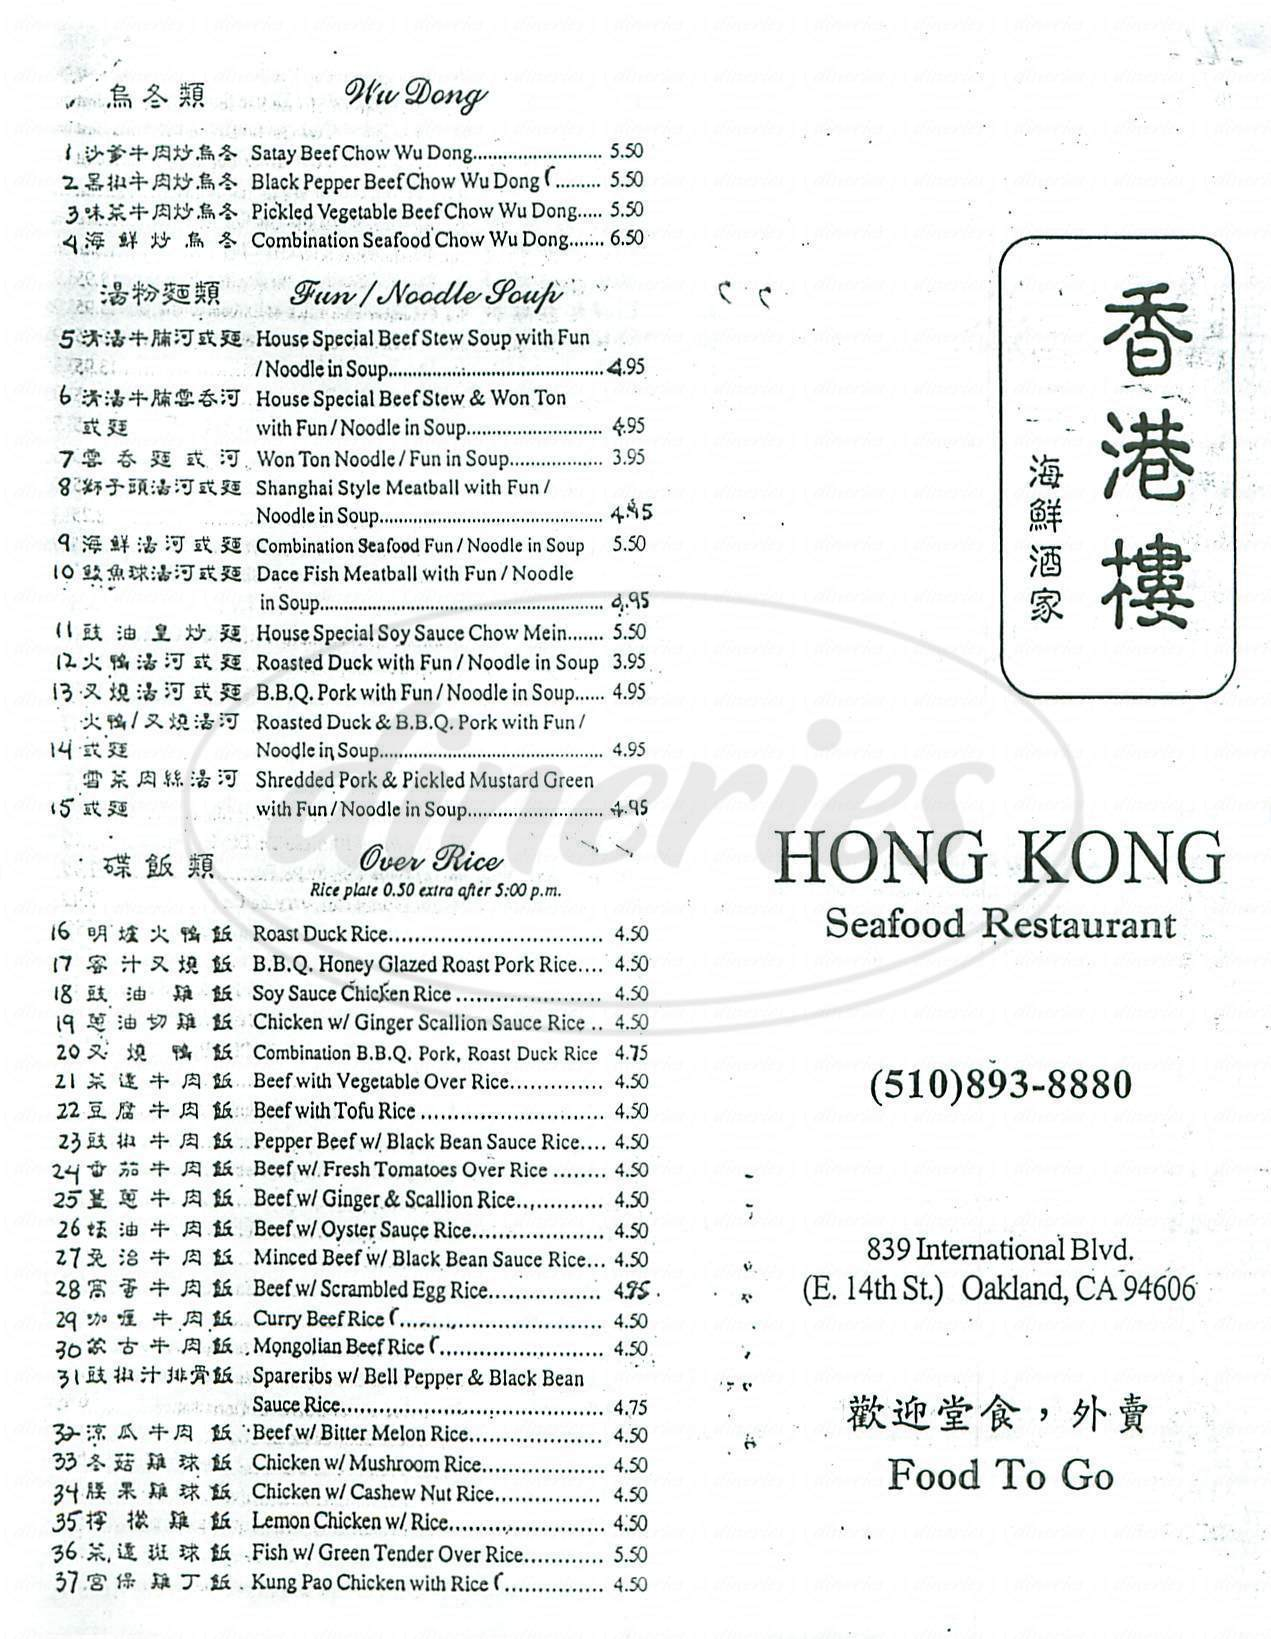 menu for Hong Kong Seafood